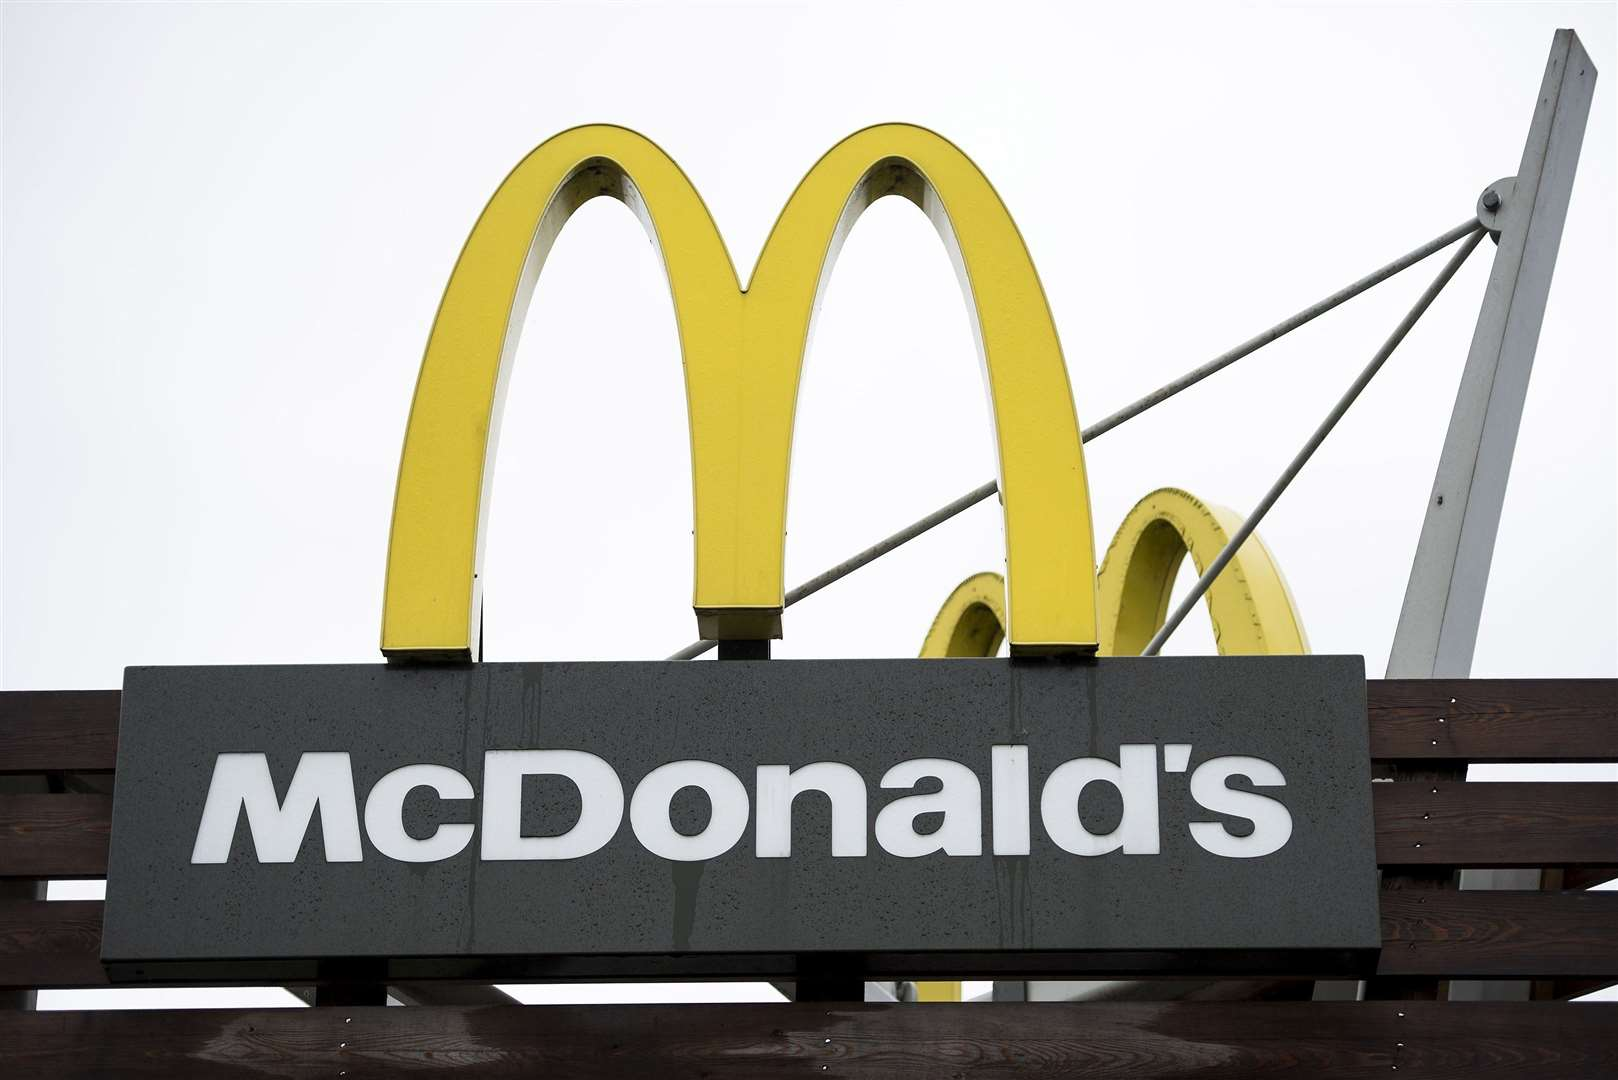 McDonald's is returning to the ASDA store in Thames Way, Gravesend